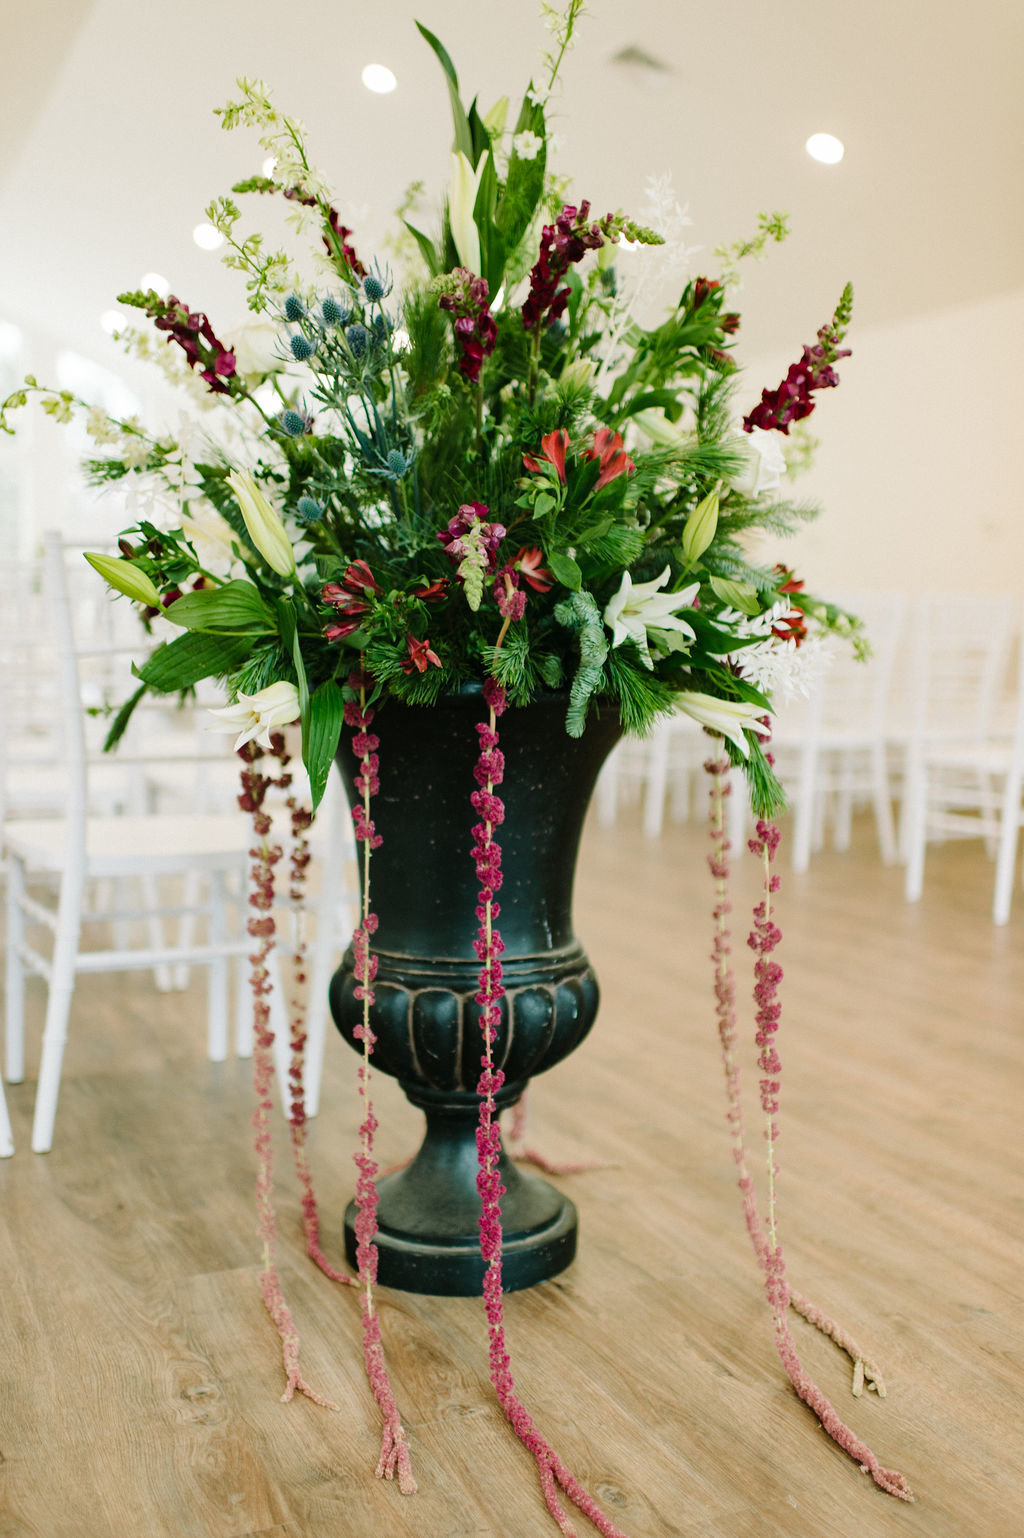 Statement floral piece by All About Flowers in ElDorado Arkansas / Tyler Rosenthal Photography